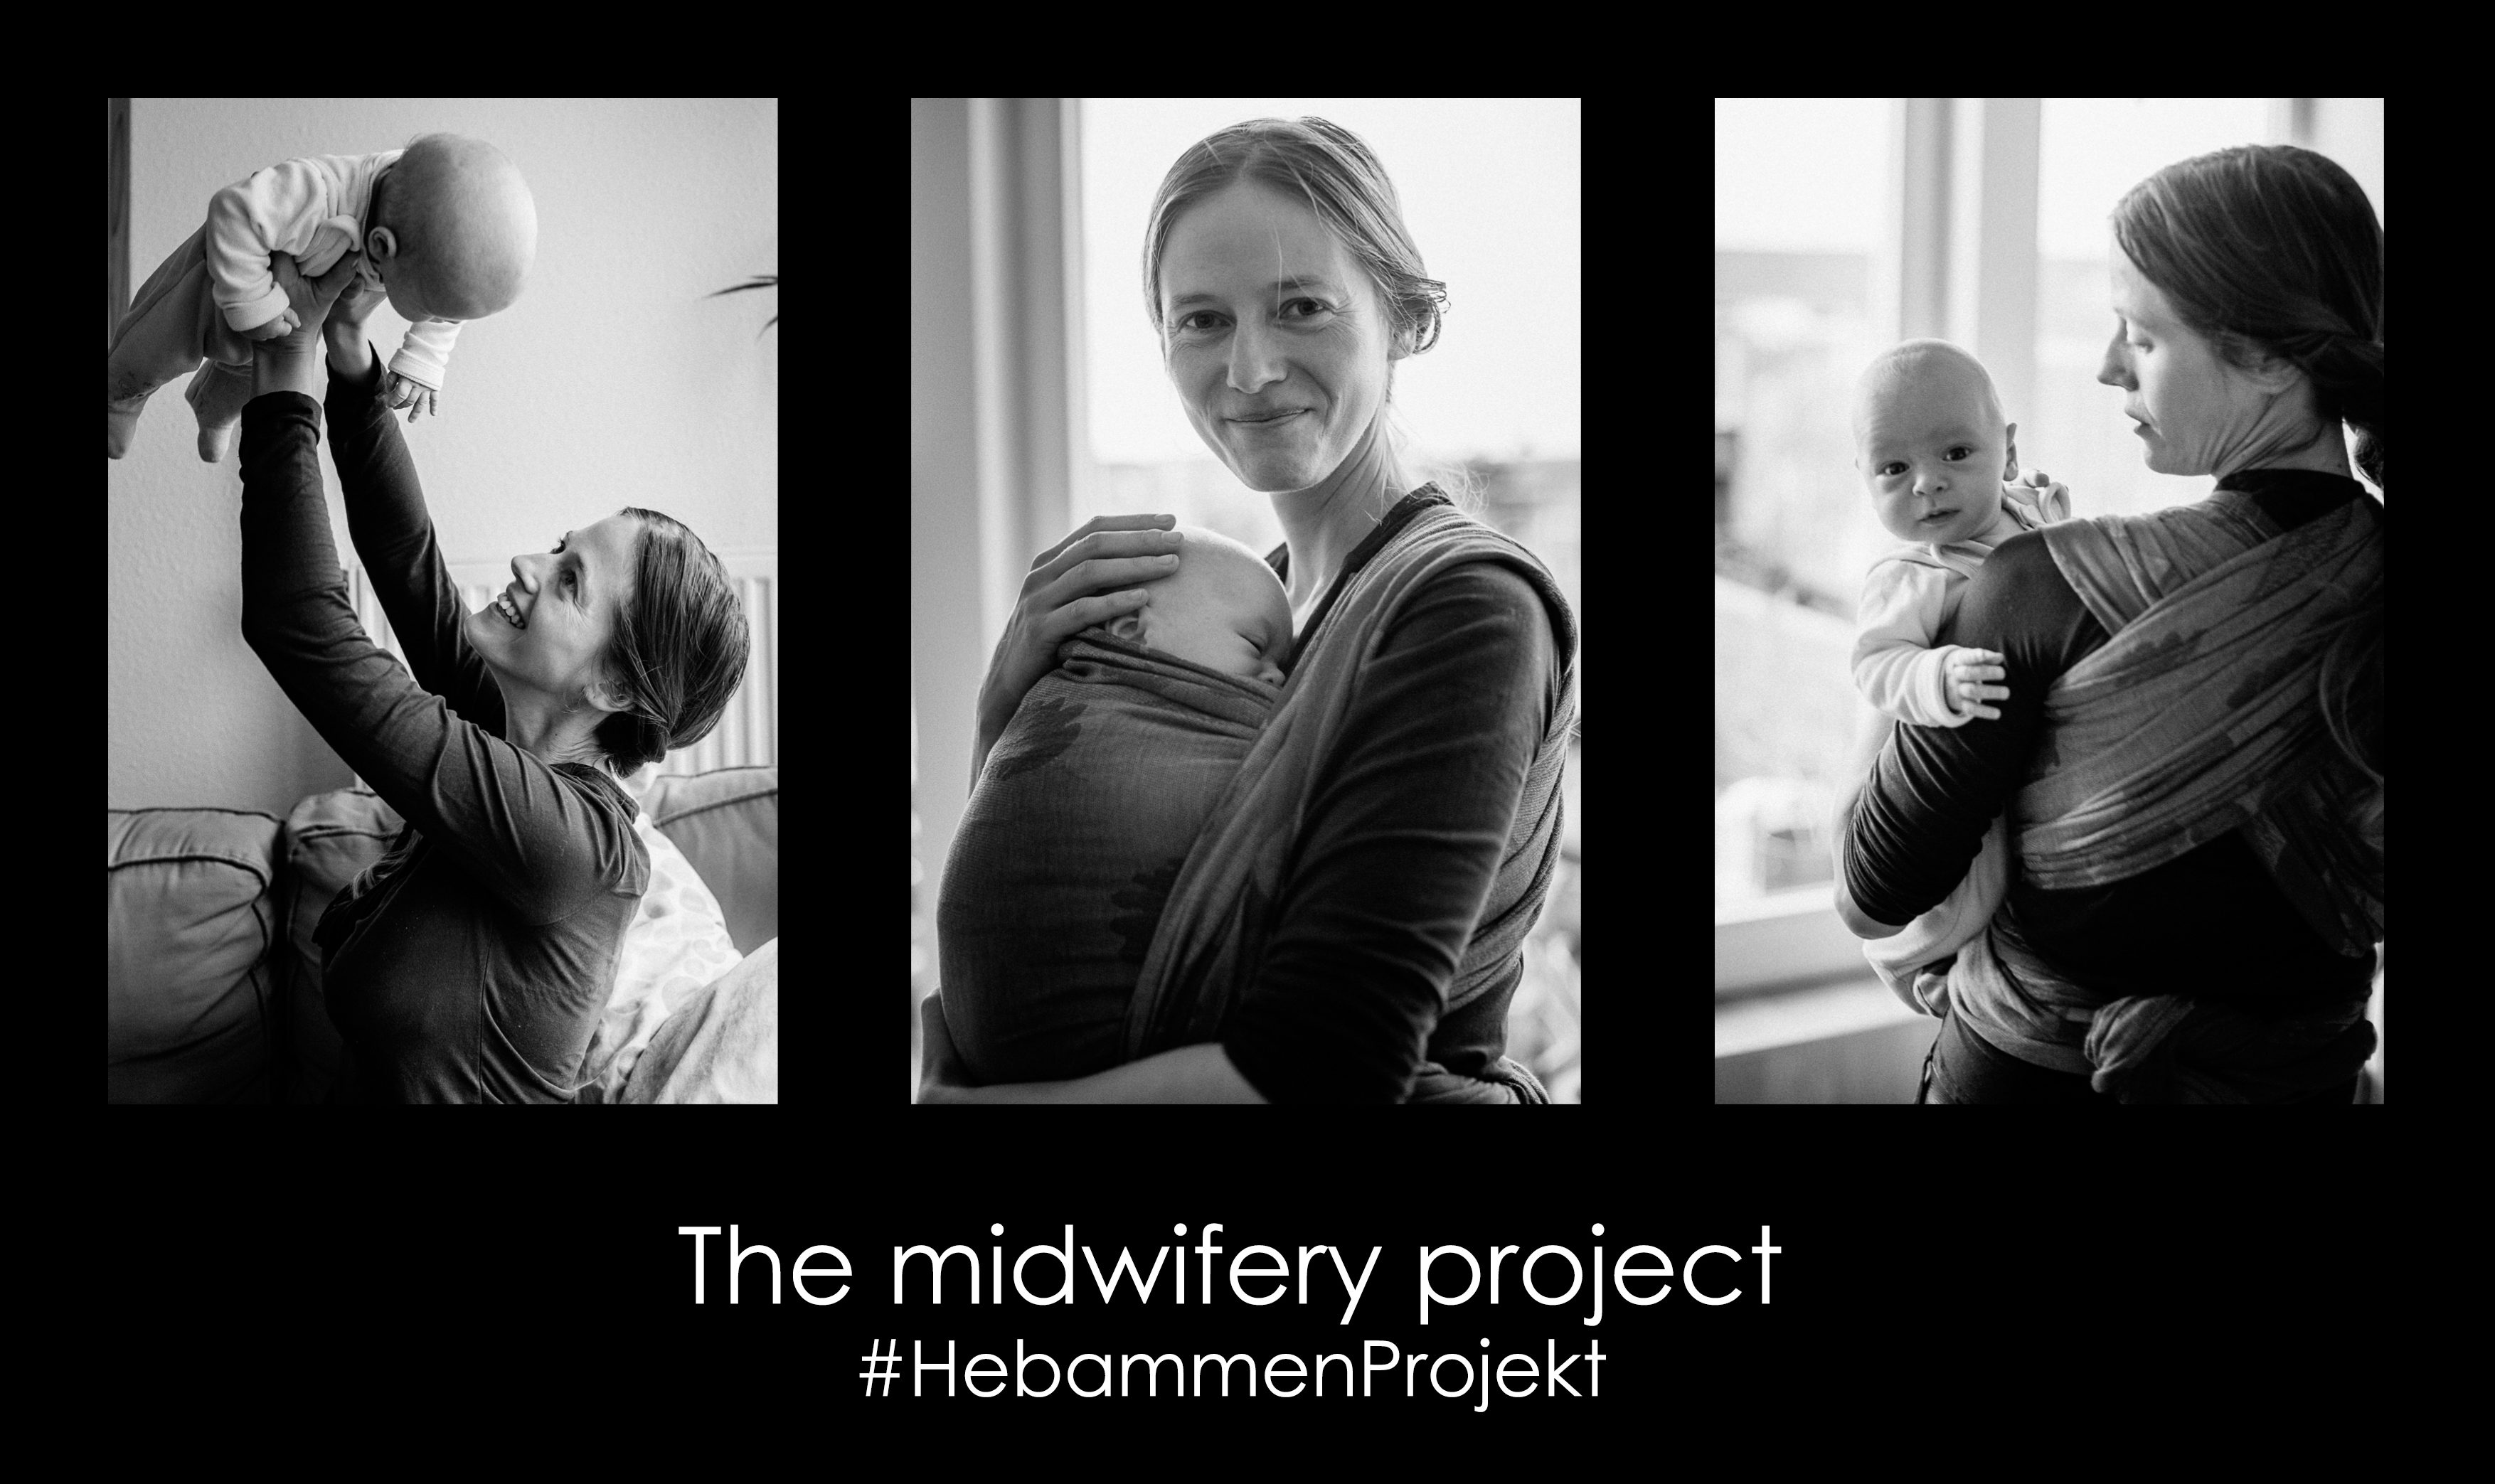 Pregnancy is not an illness - HebammenProjekt 2